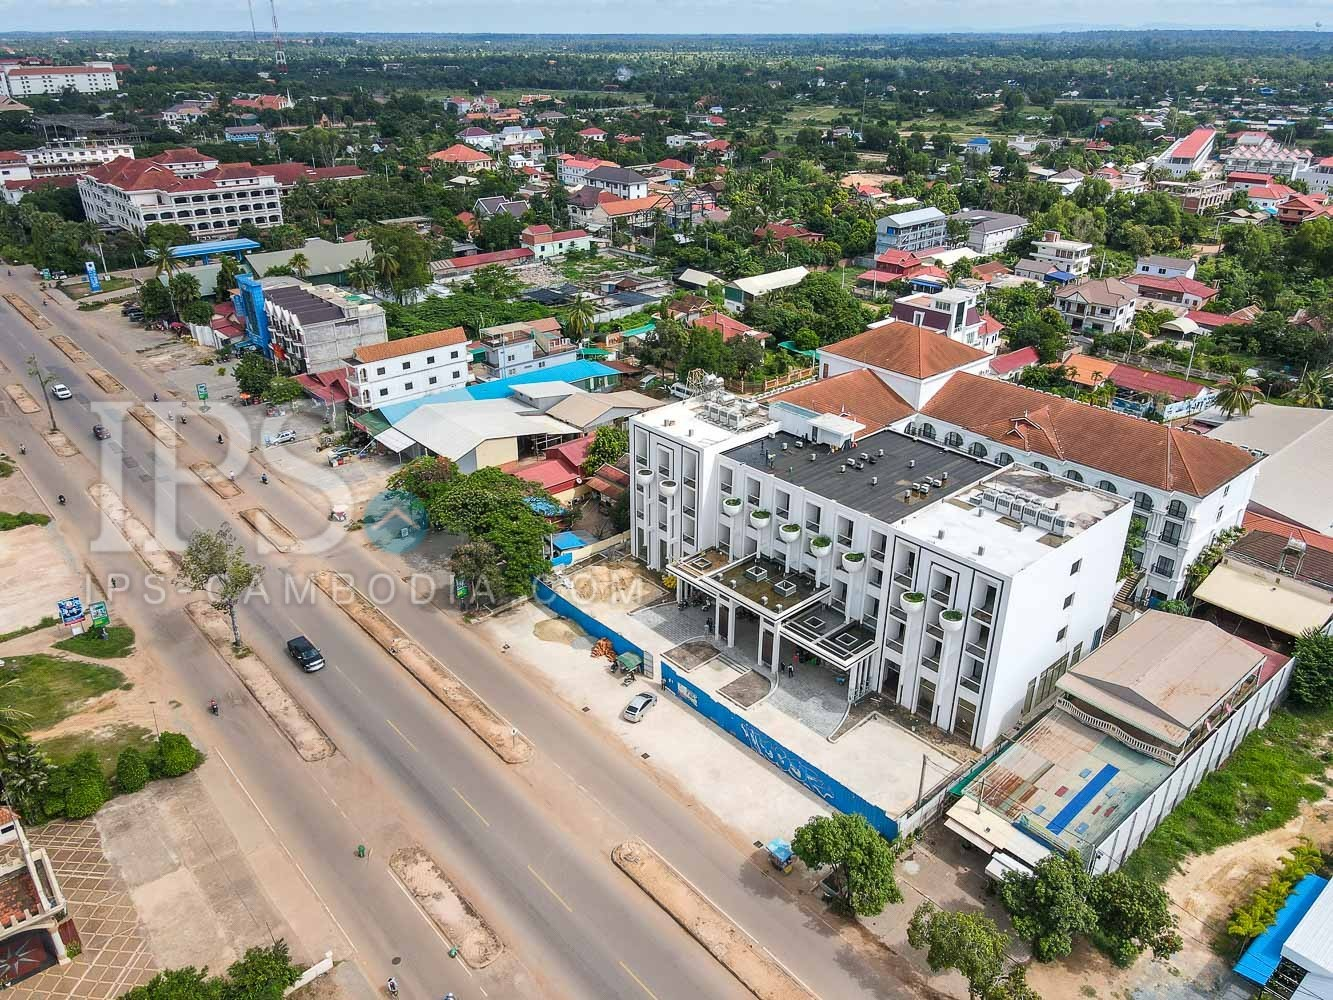 150 Bedroom Hotel For Sale - Svay Dangkum, Siem Reap